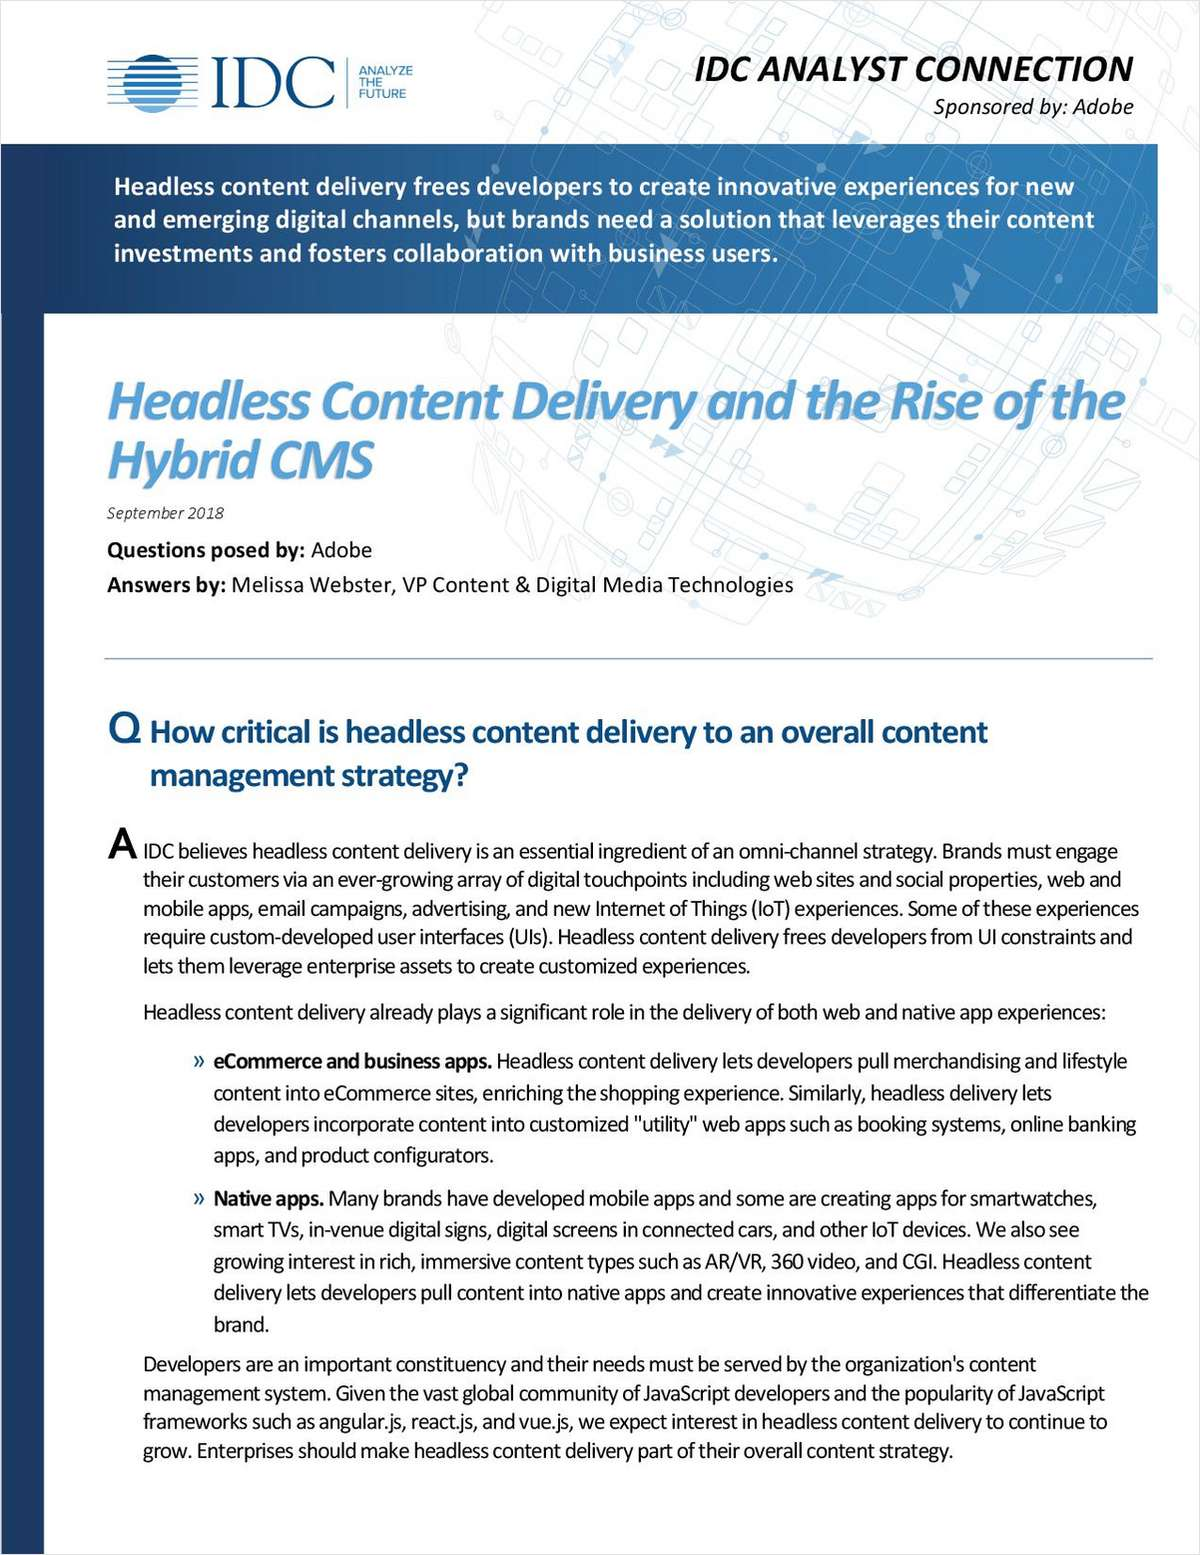 Headless Content Delivery and the Rise of the Hybrid CMS, Free Adobe